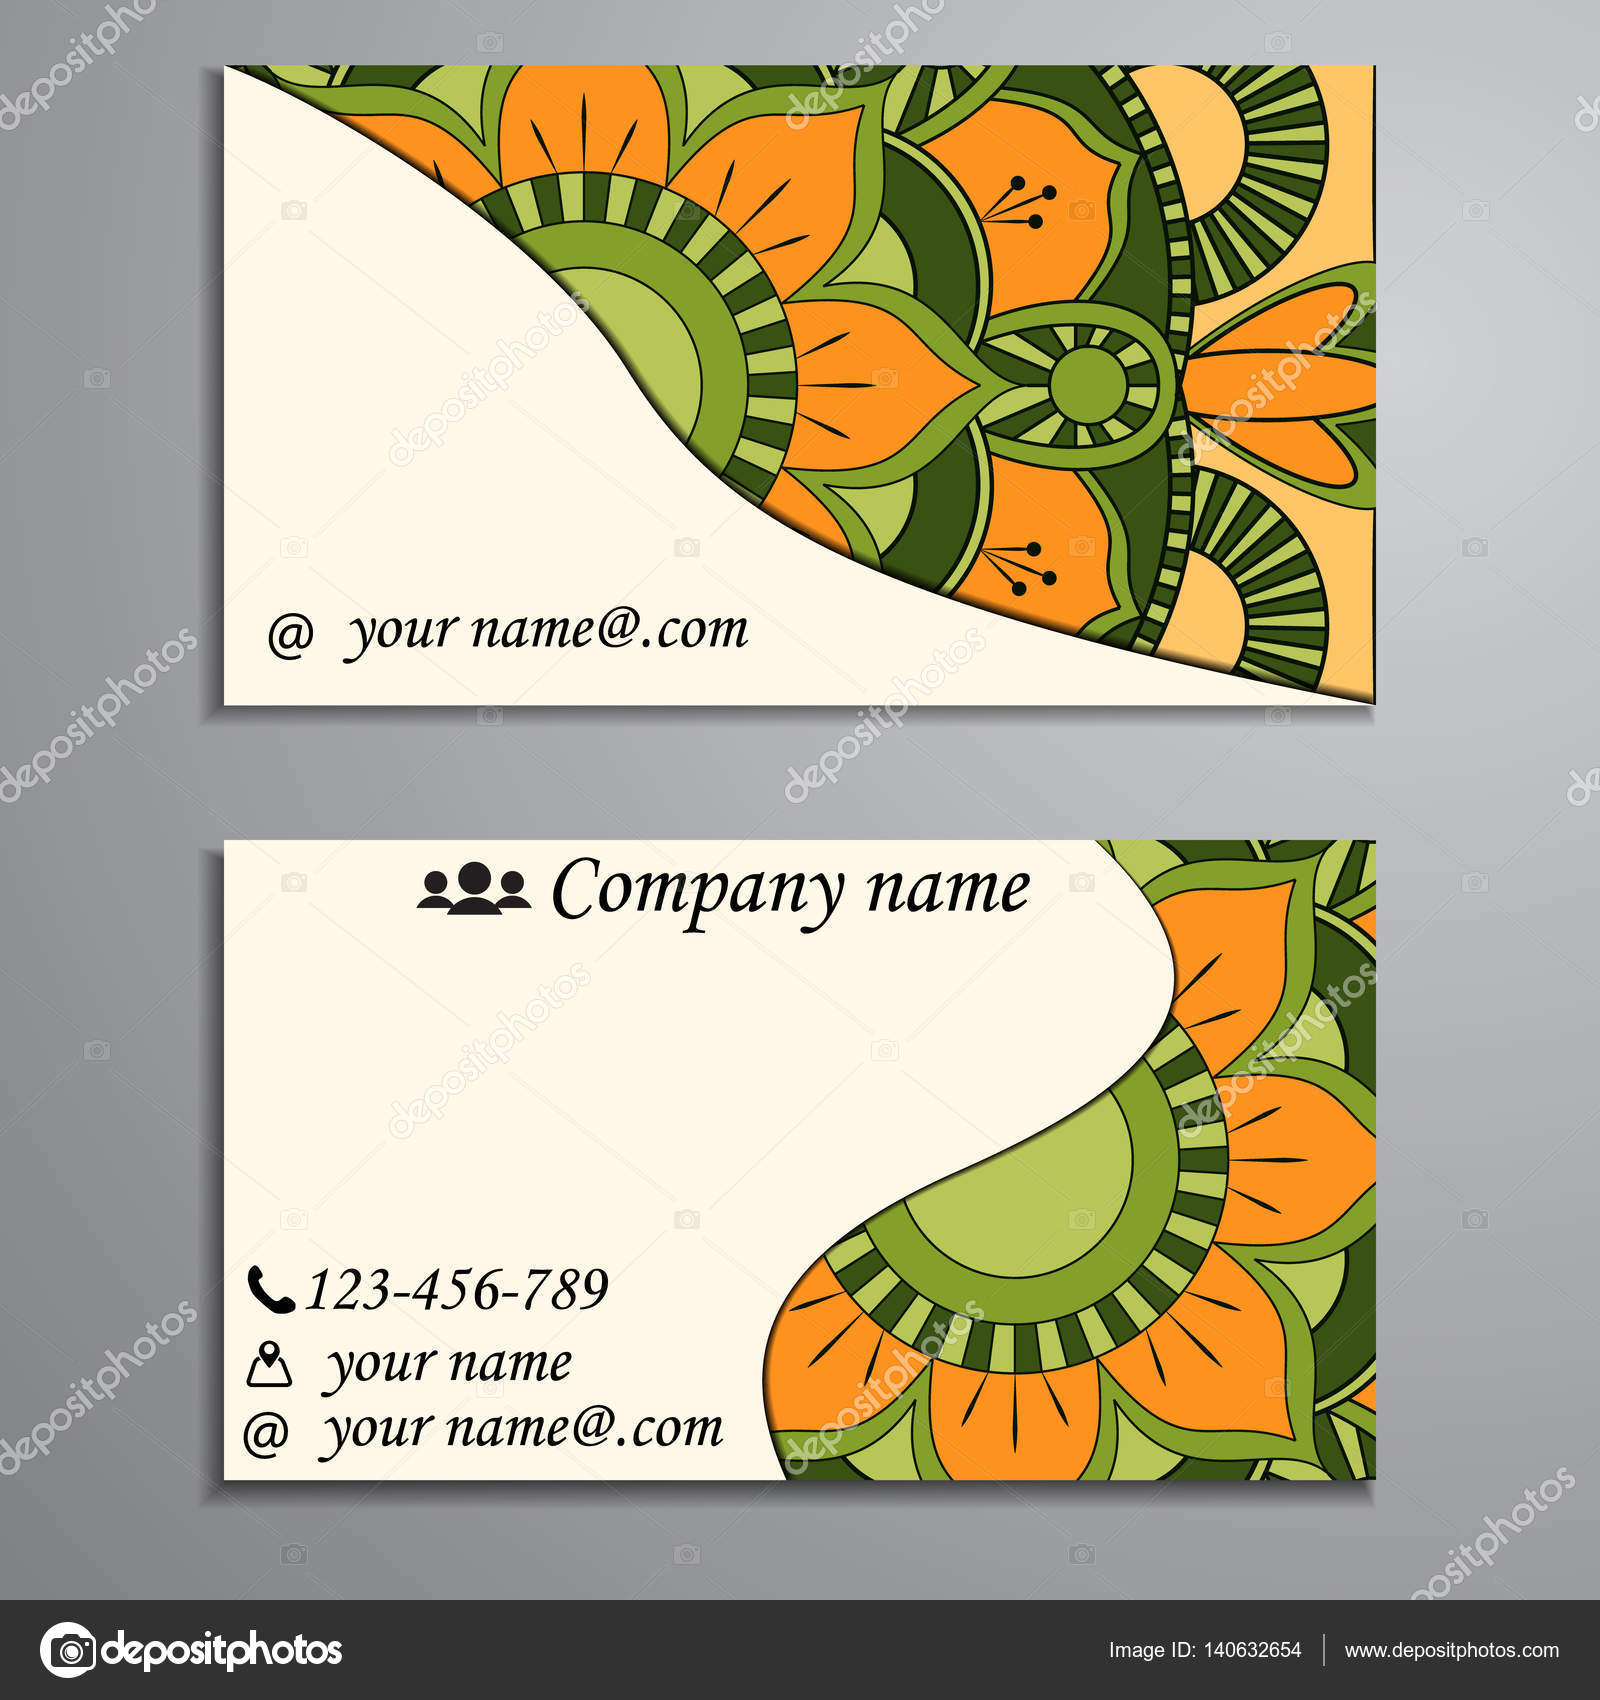 Invitation, business card or banner with text template  Round fl